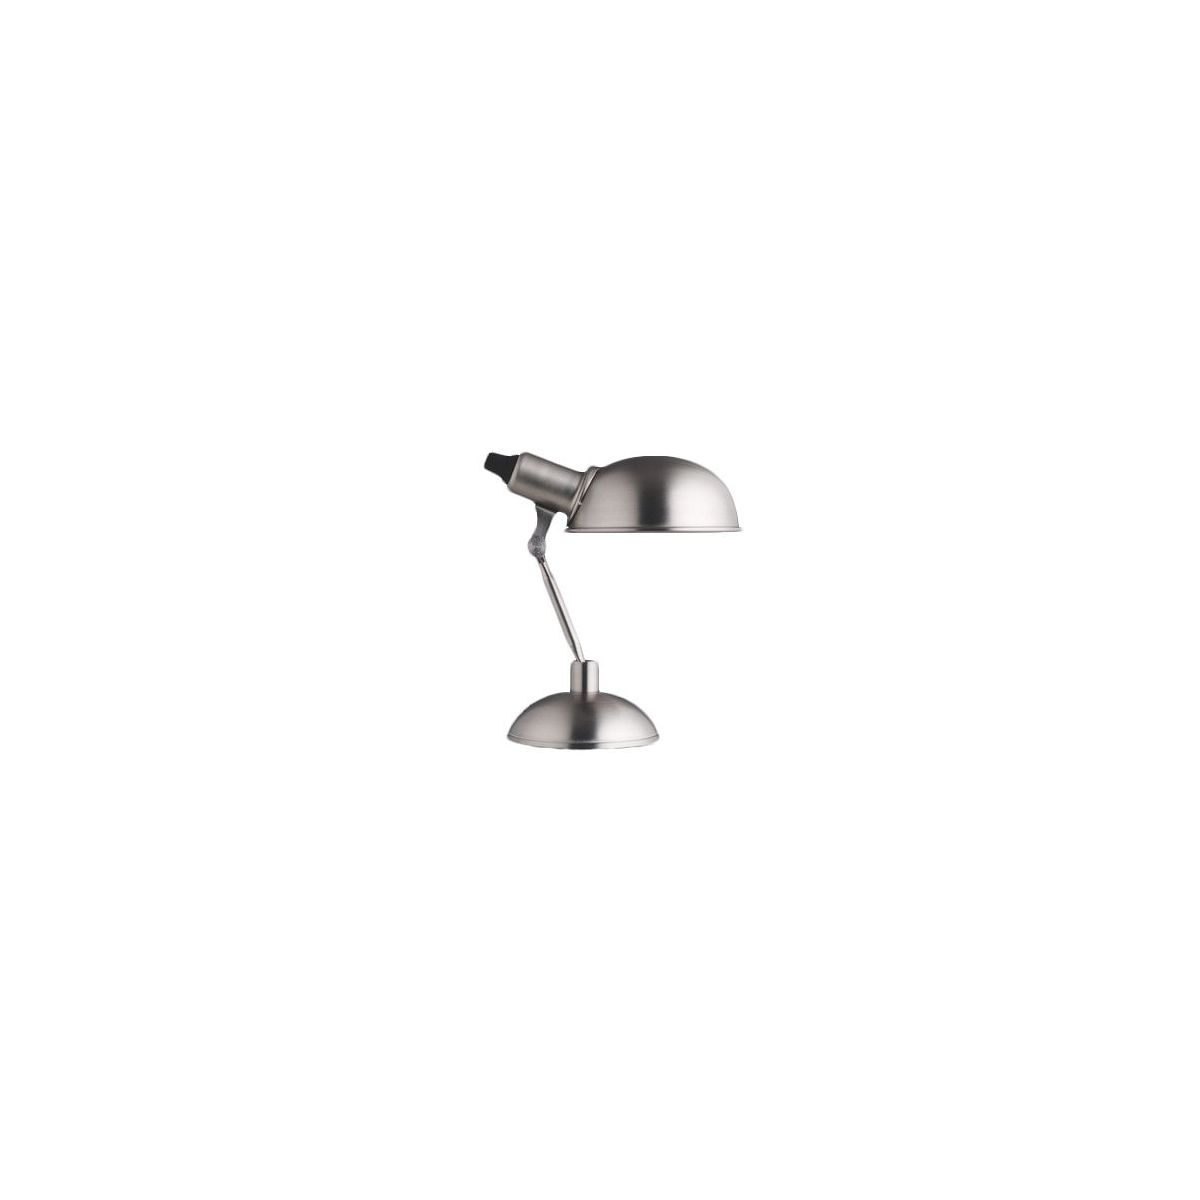 Steel desk lamp